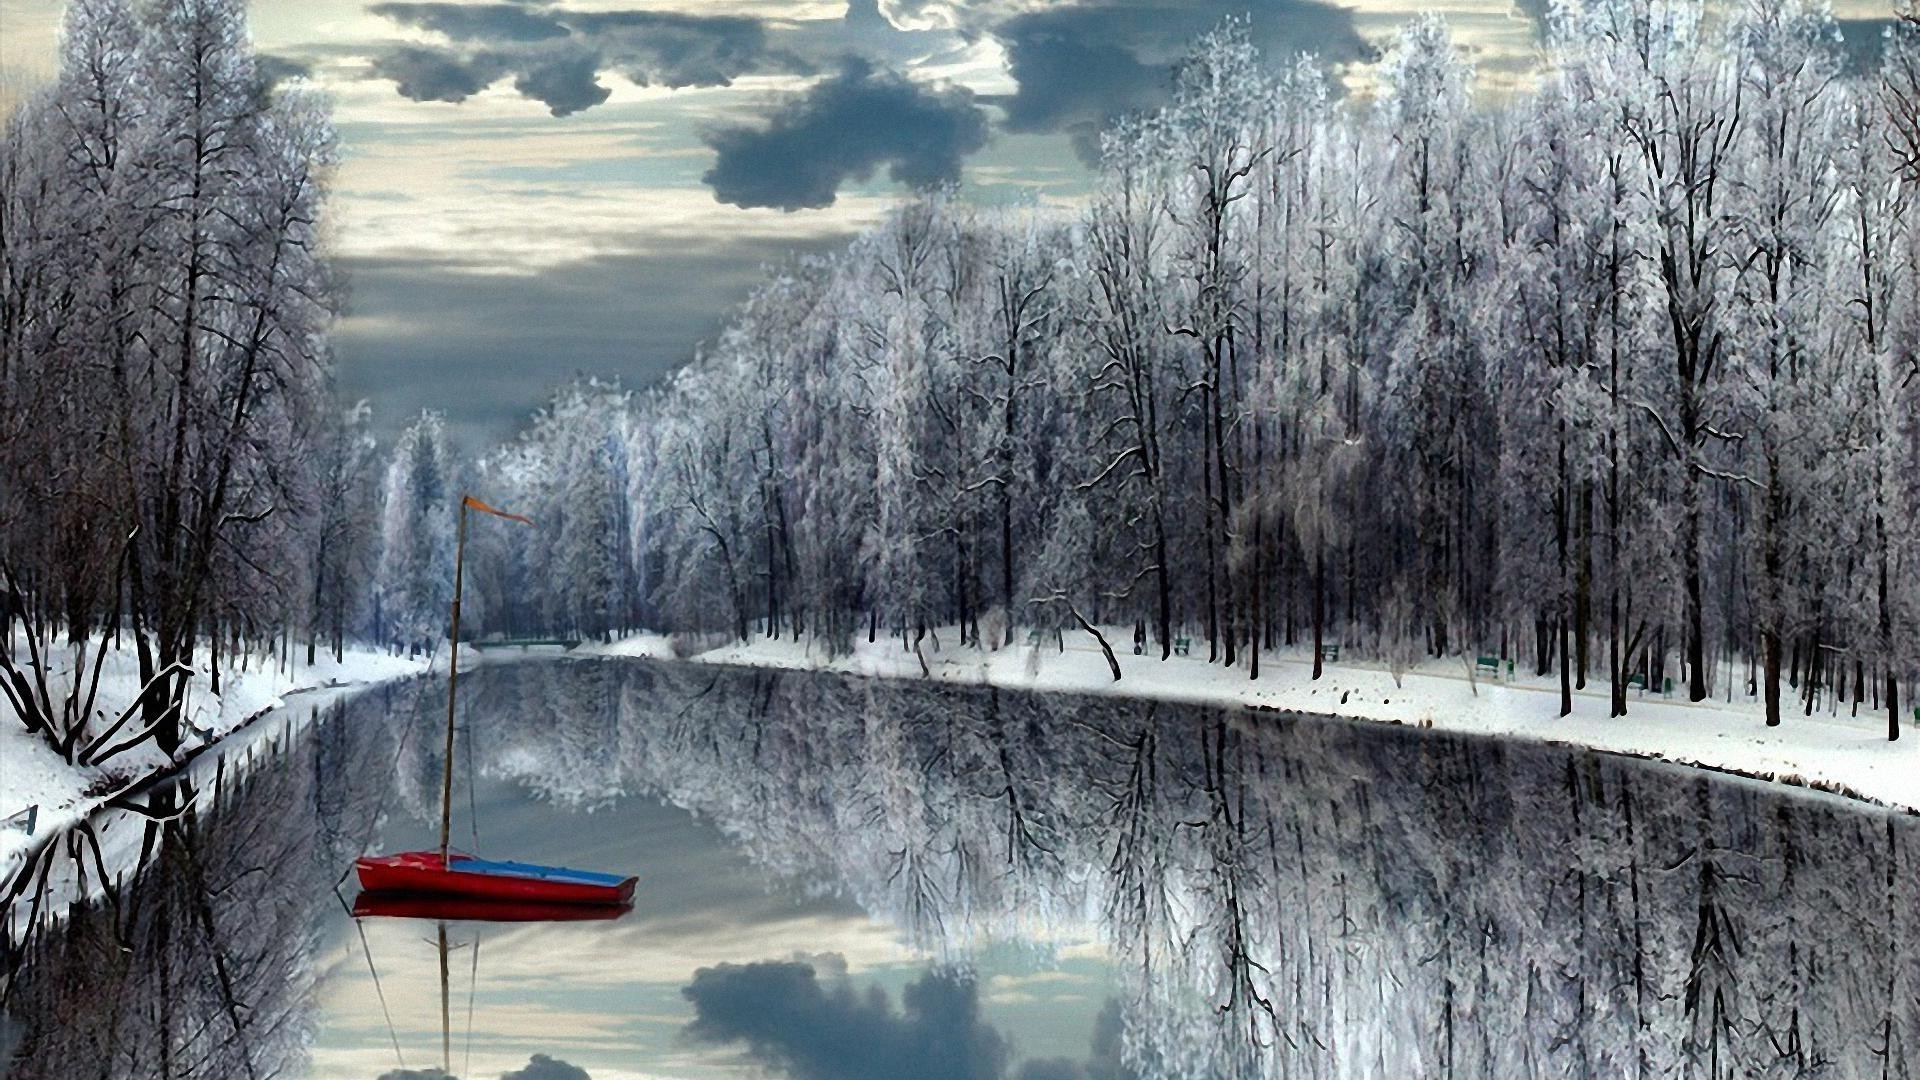 winter snow wood cold tree landscape frost nature season ice frozen scenic weather mountain lake